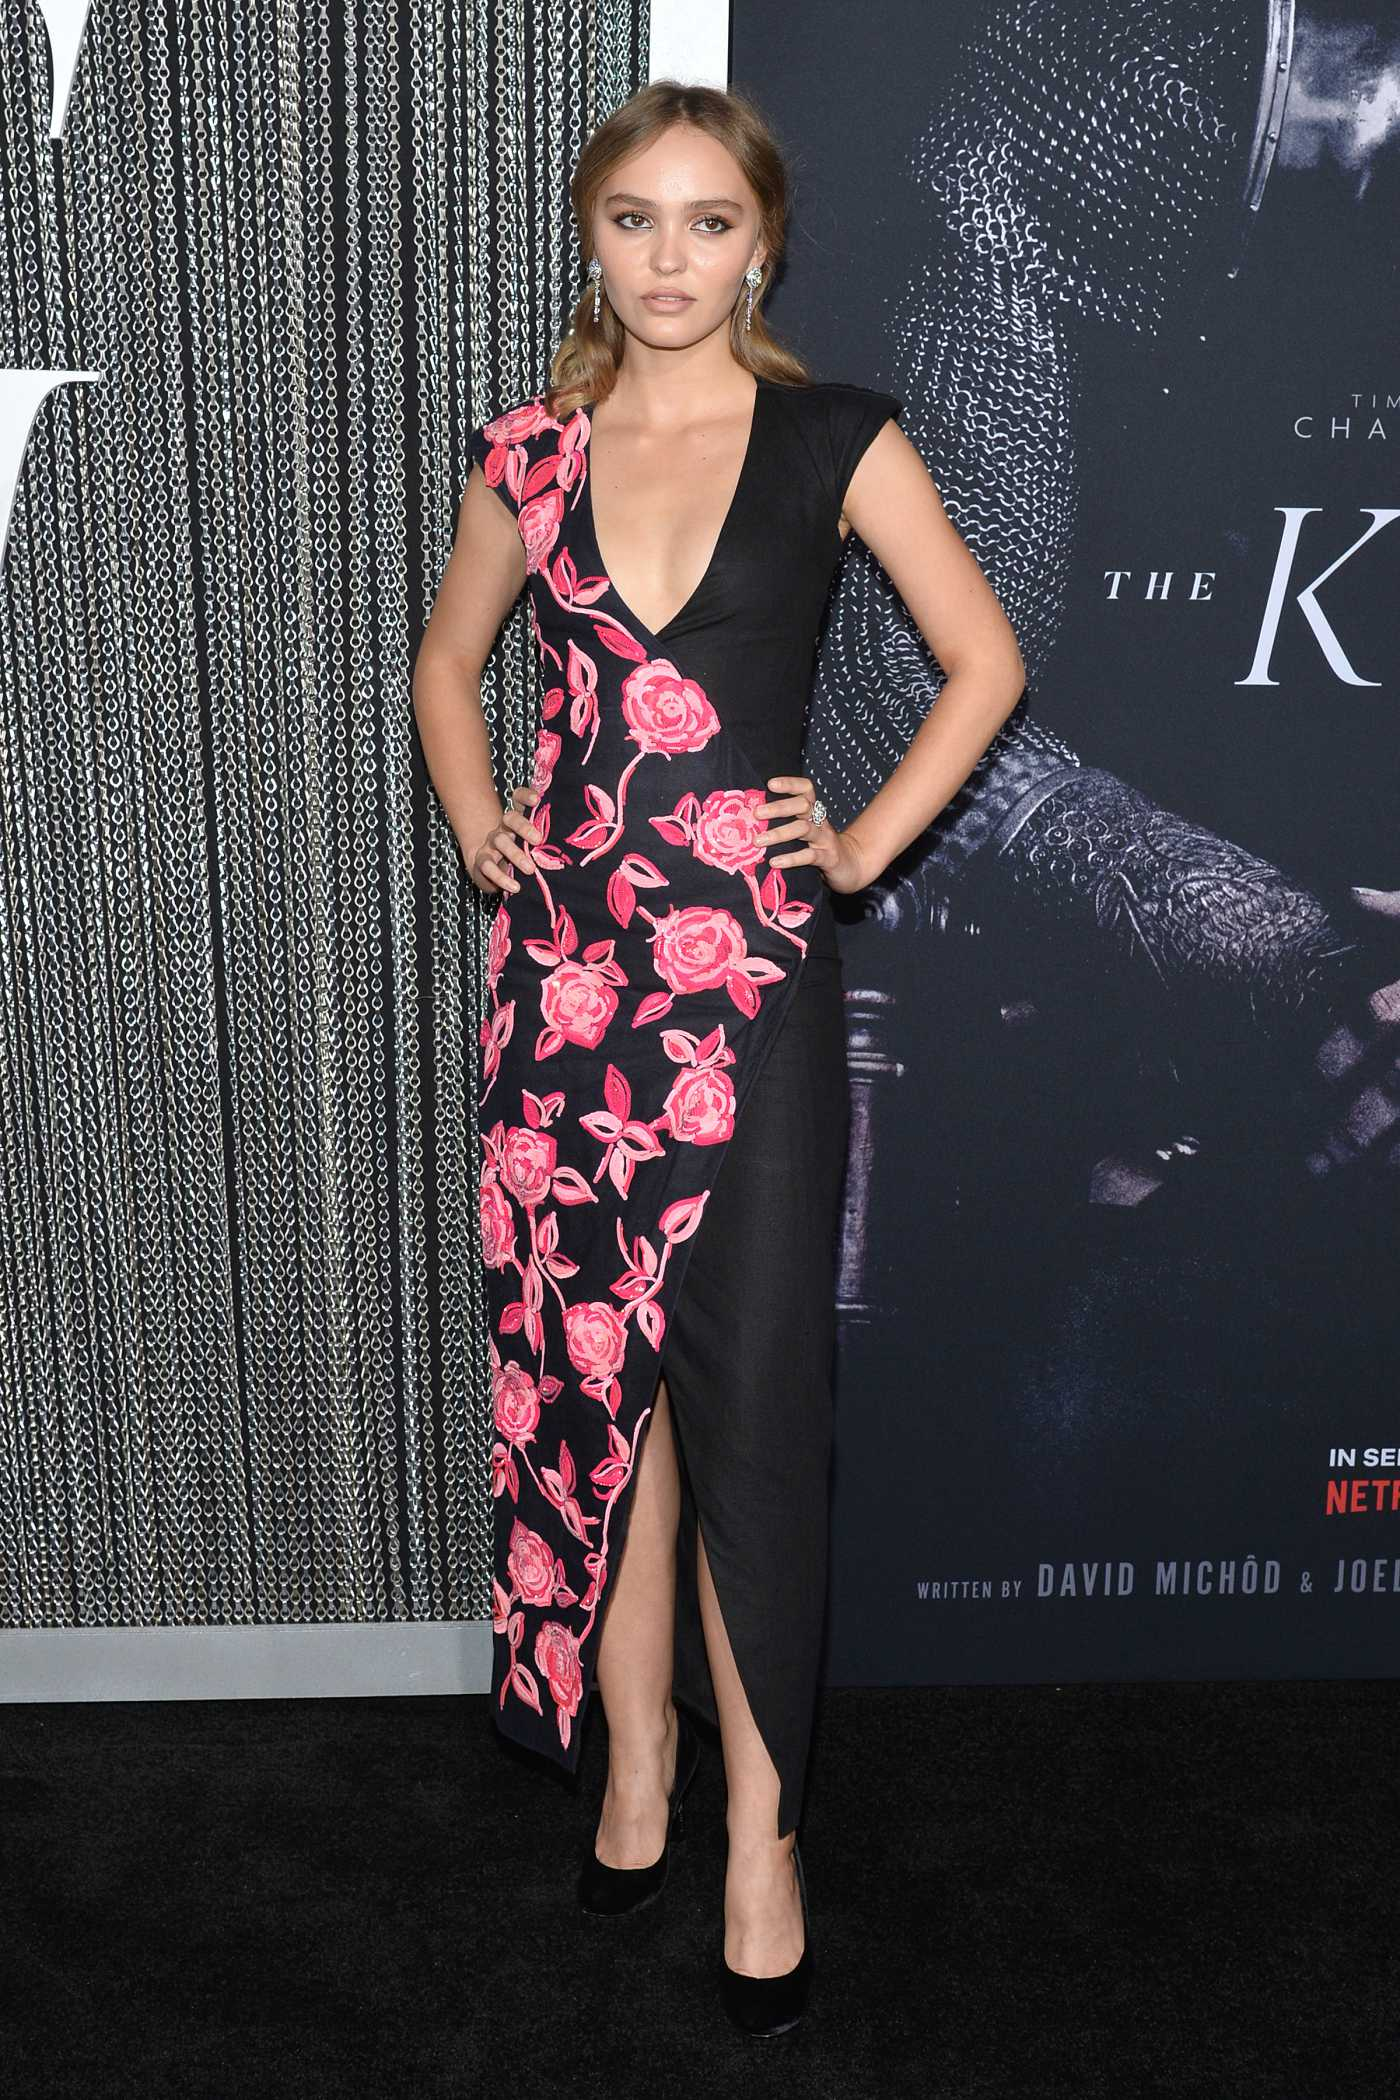 Lily-Rose Depp Attends The King Premiere at SVA Theater in New York City 10/01/2019